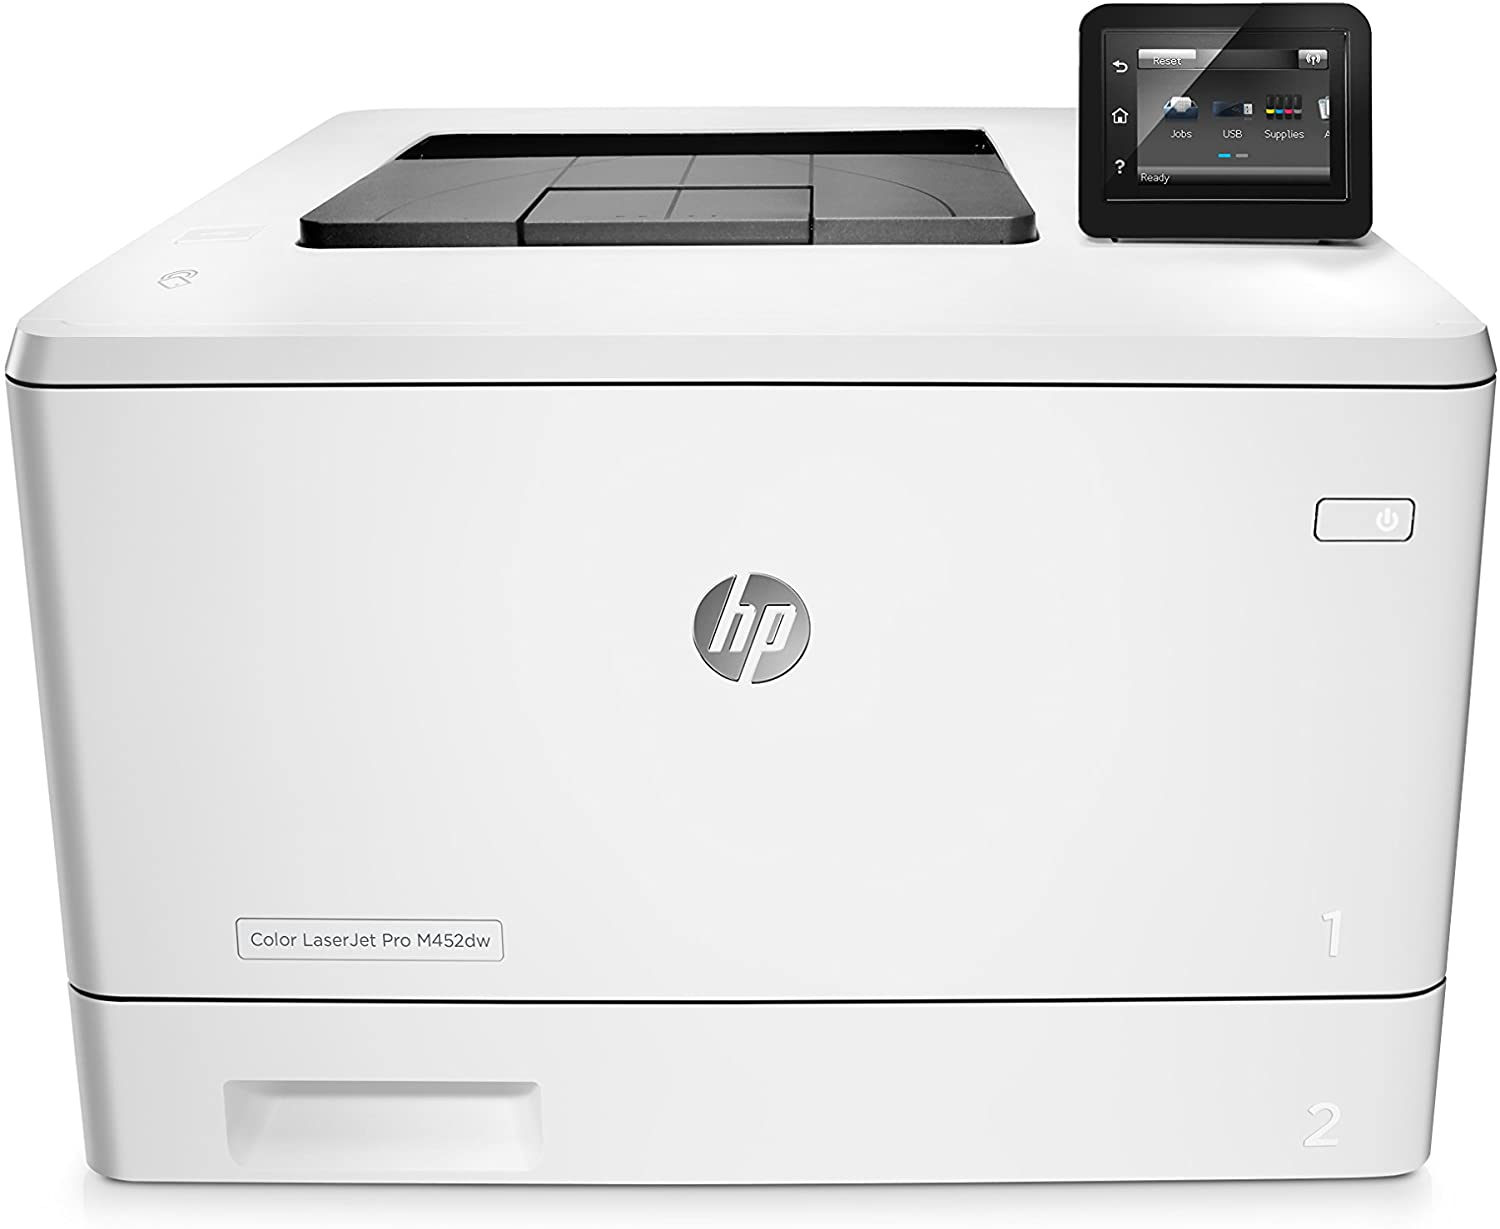 HP LaserJet Pro M452dw Wireless Color Laser Printer with Duplex Printing (CF394A)